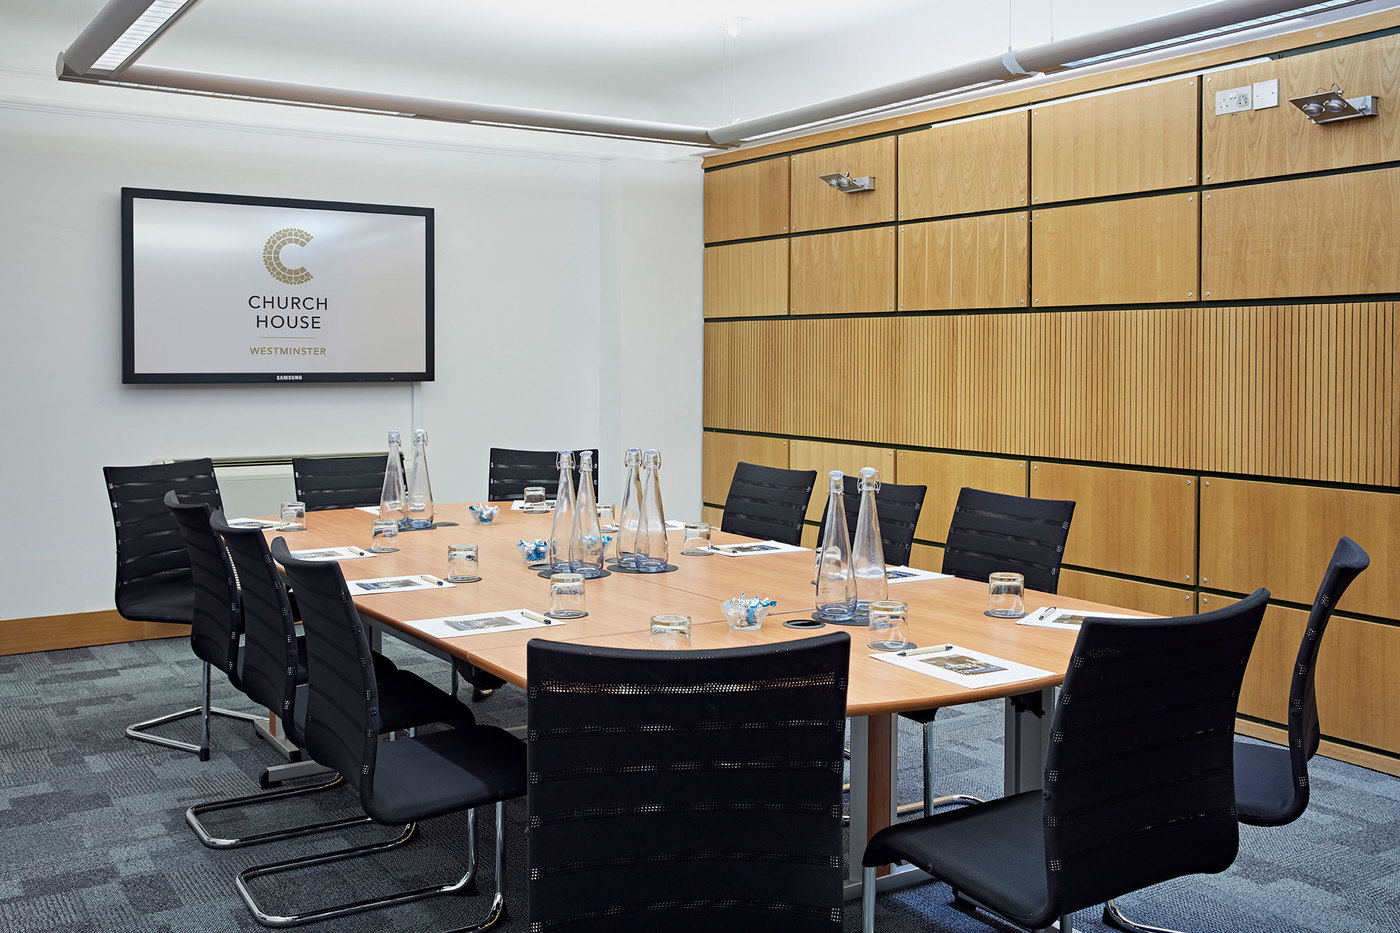 X large 1511958390 1506687901 temple room   boardroom style header church house conference centre london